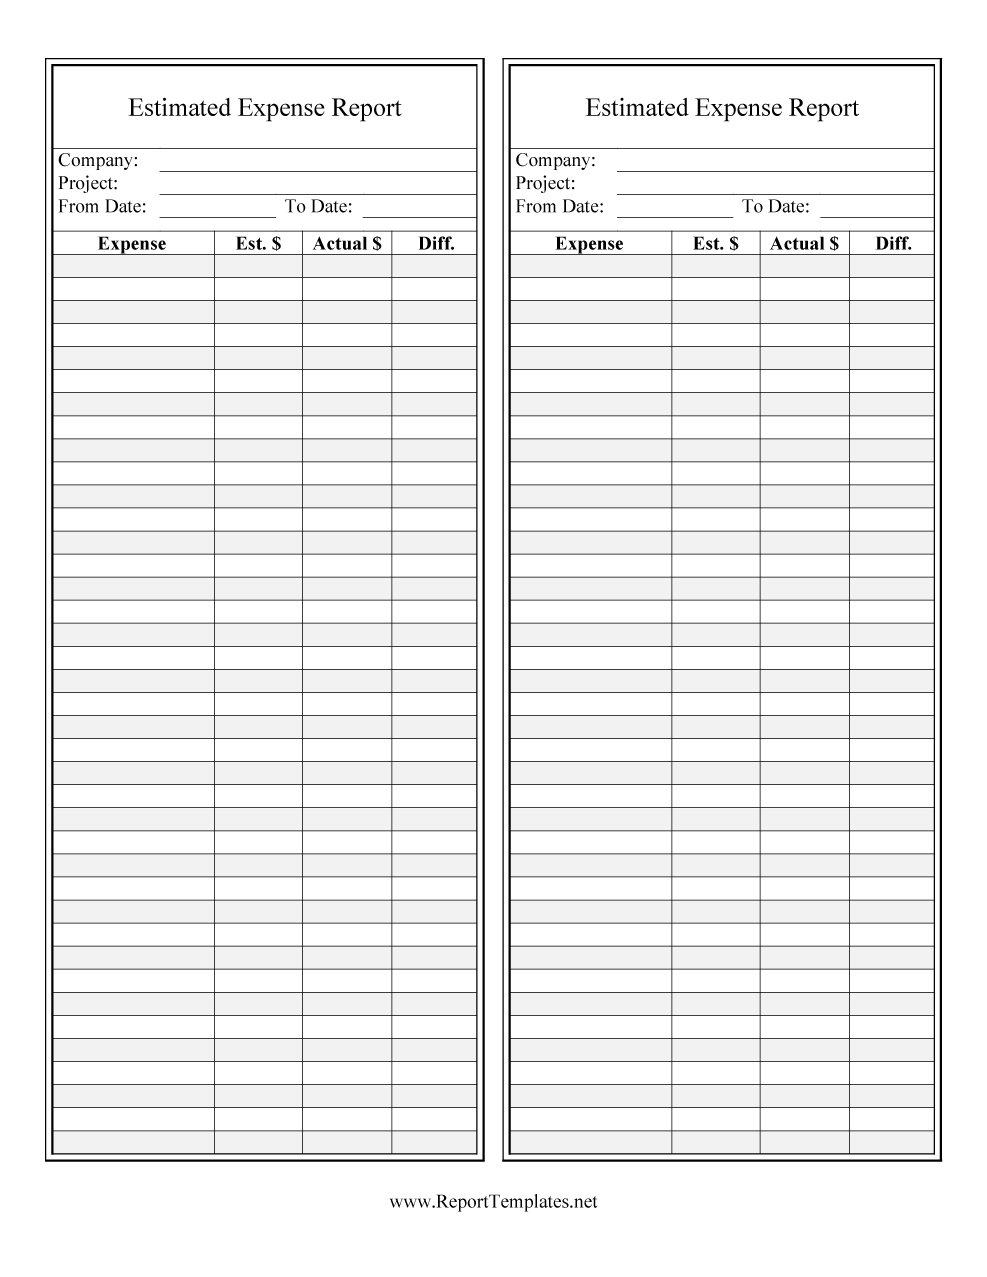 40  Expense Report Templates To Help You Save Money   Template Lab Throughout Microsoft Expense Report Template Microsoft Expense Report Template Expense Spreadshee Expense Spreadshee microsoft excel travel expense report template